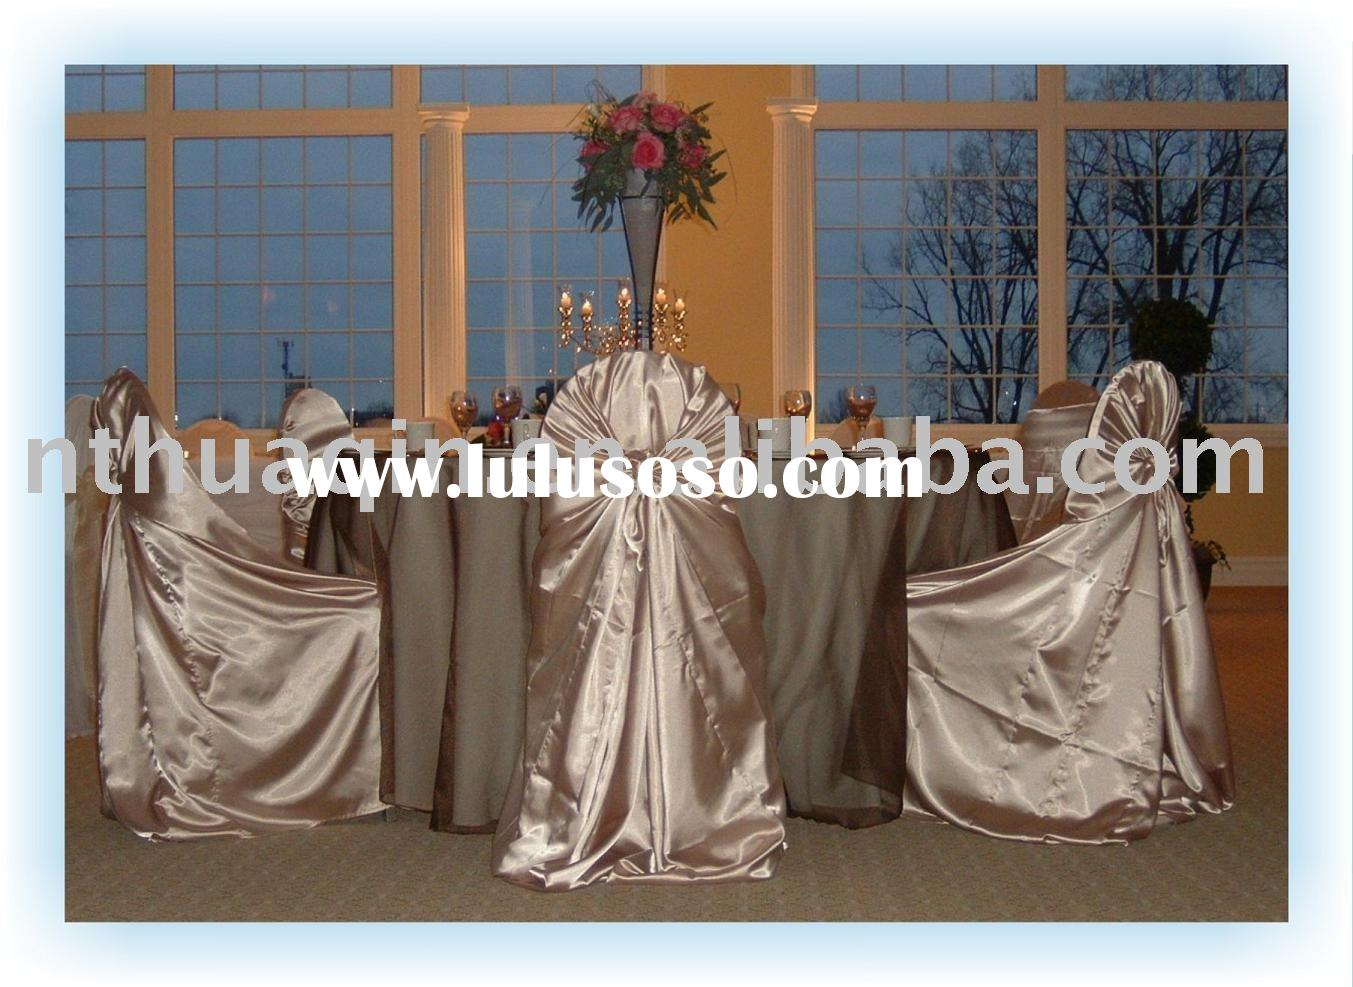 Satin chair cover& satin sashes, wedding chair covers, banquet chair cover, hotel chair covers